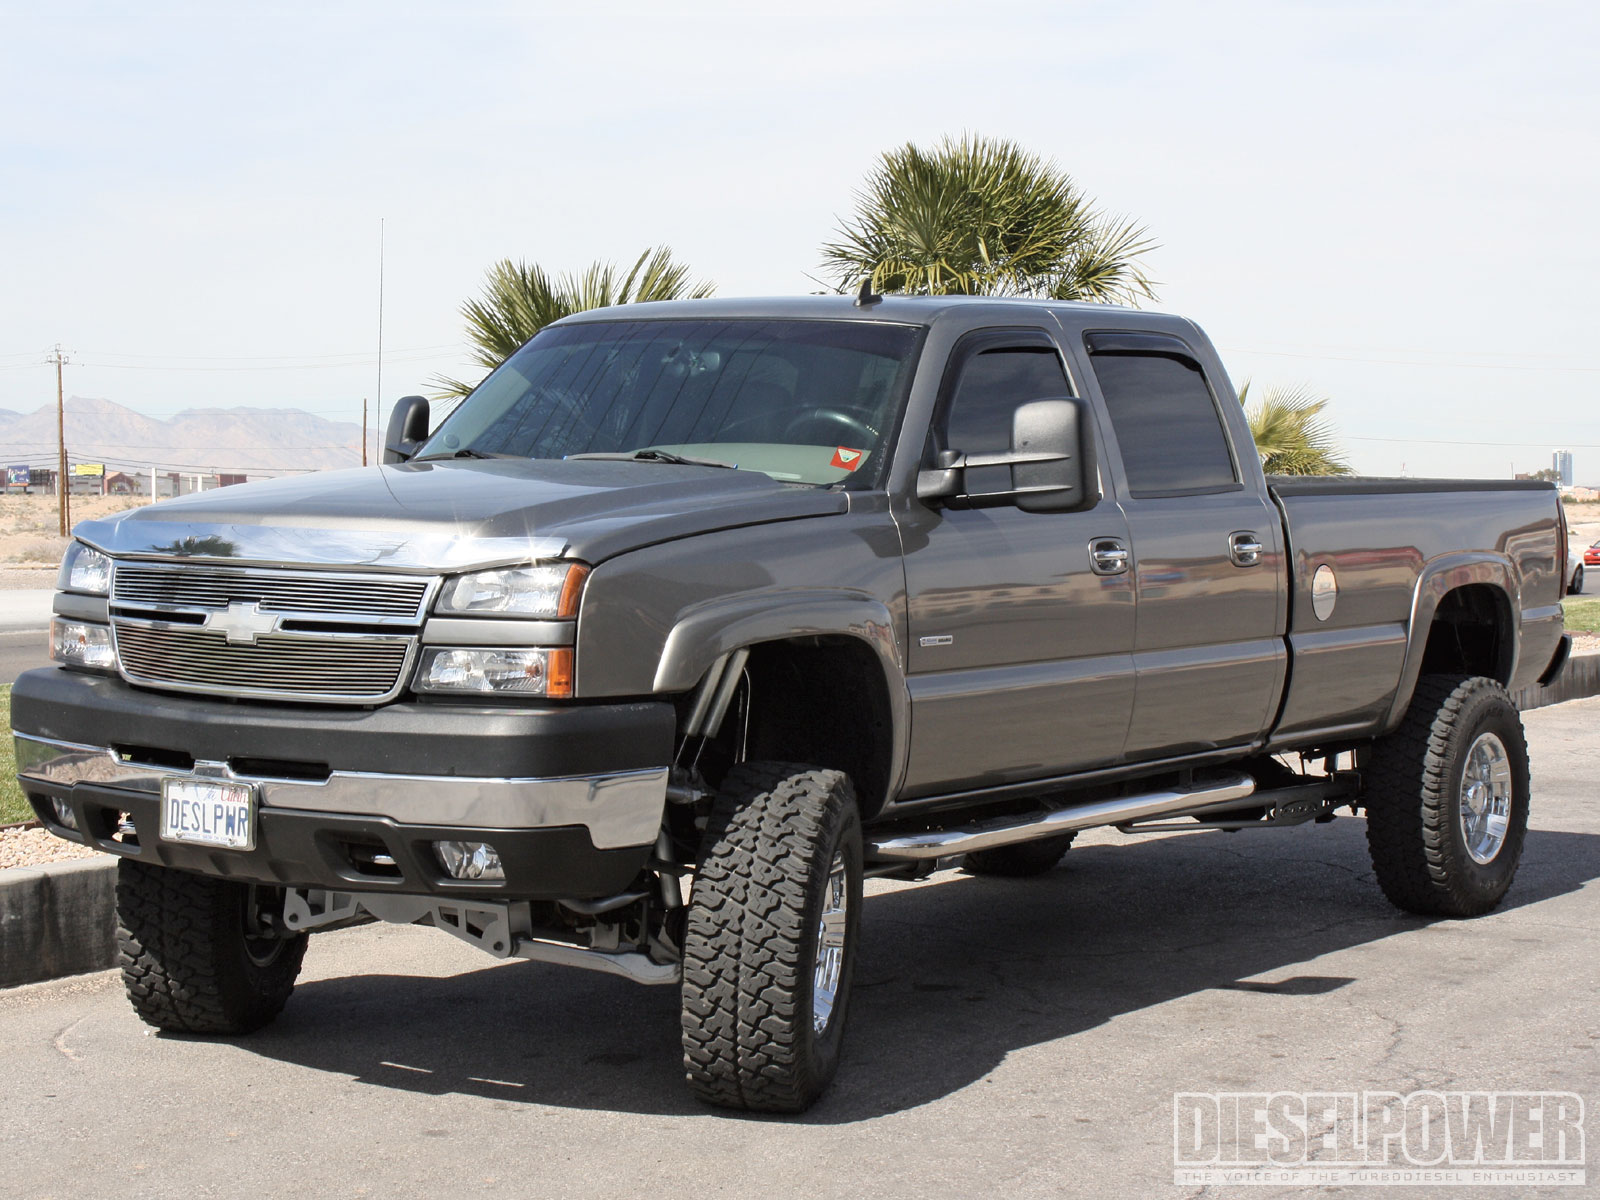 2006 Chevrolet Silverado 2500hd Photos Informations